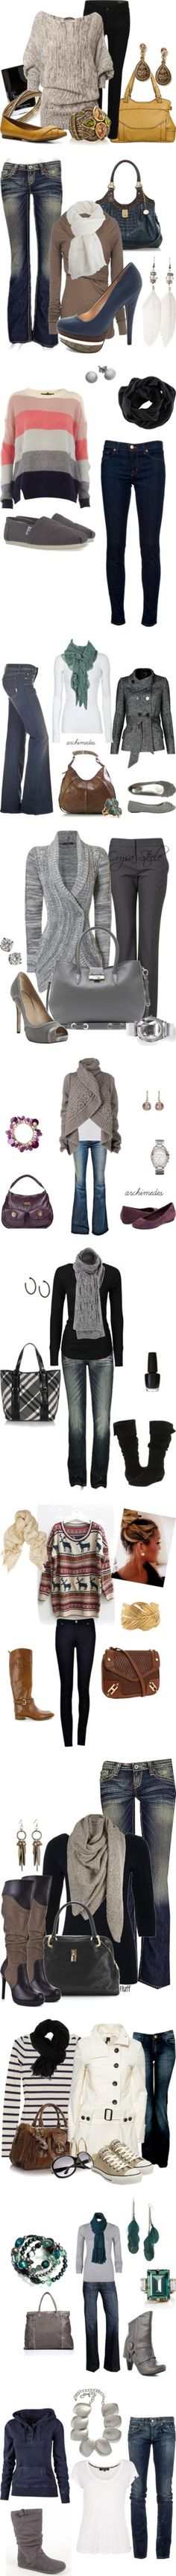 """winter"" by paige-elmer ❤ liked on Polyvore"